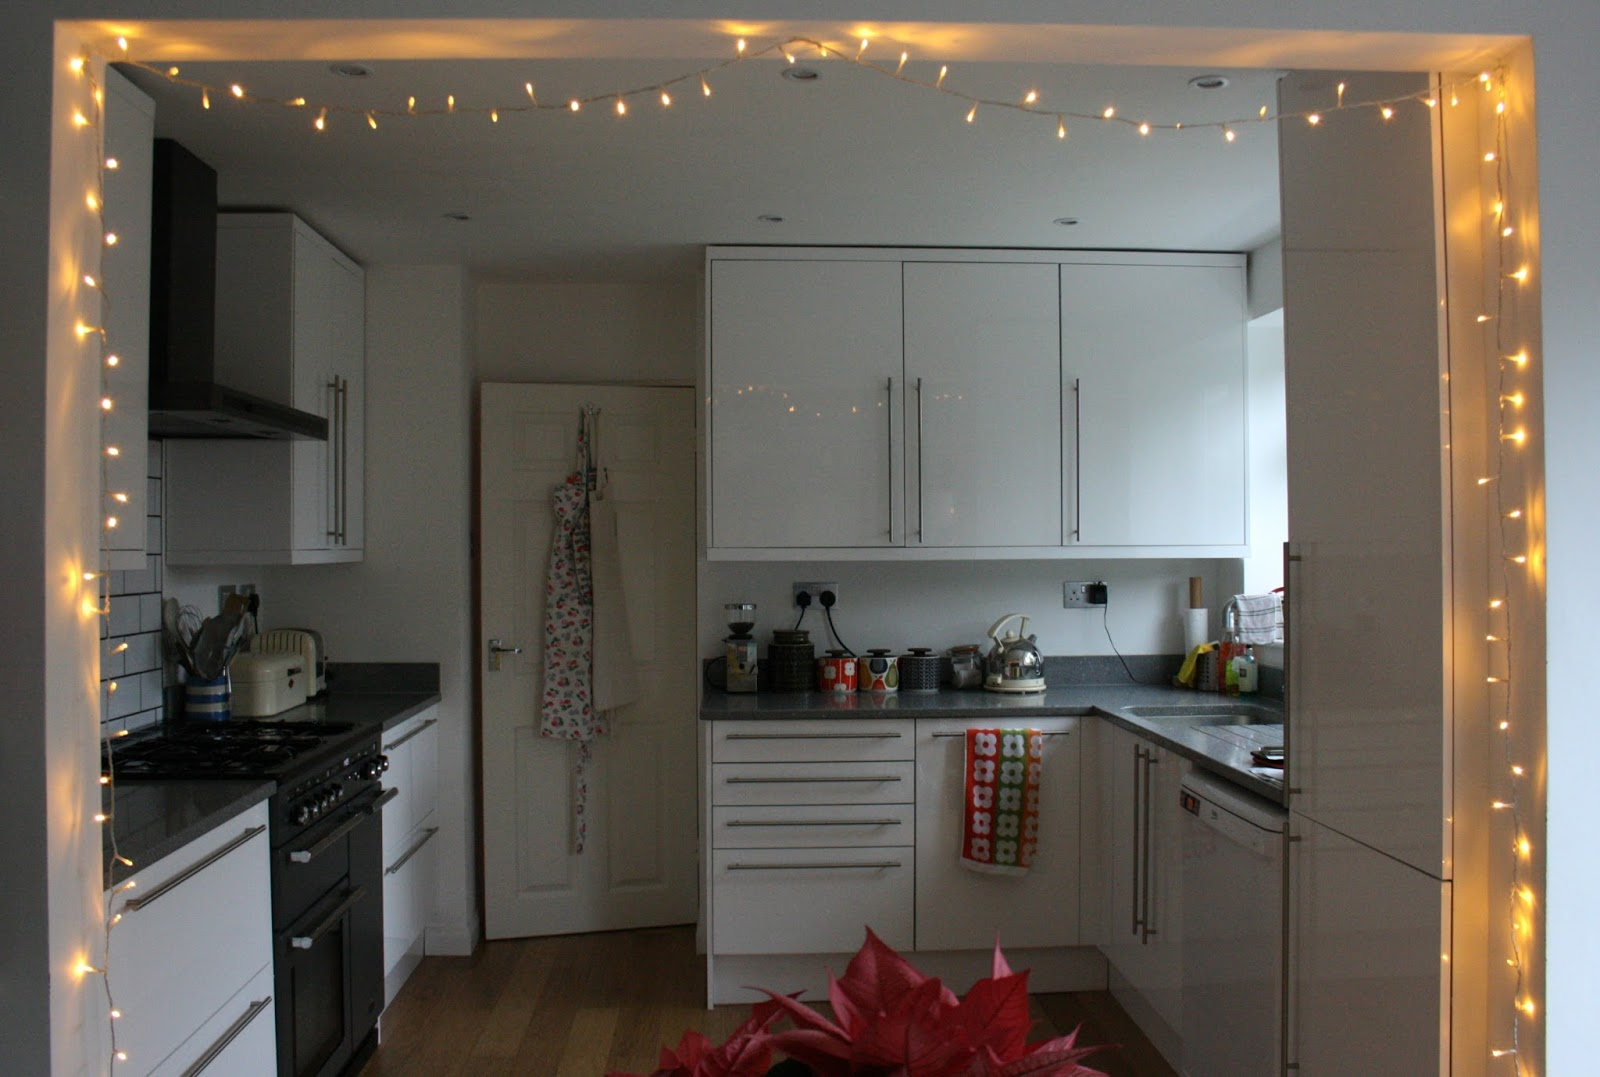 The Fairy Lights Are Still Up & Tales from a happy house.: The Fairy Lights Are Still Up